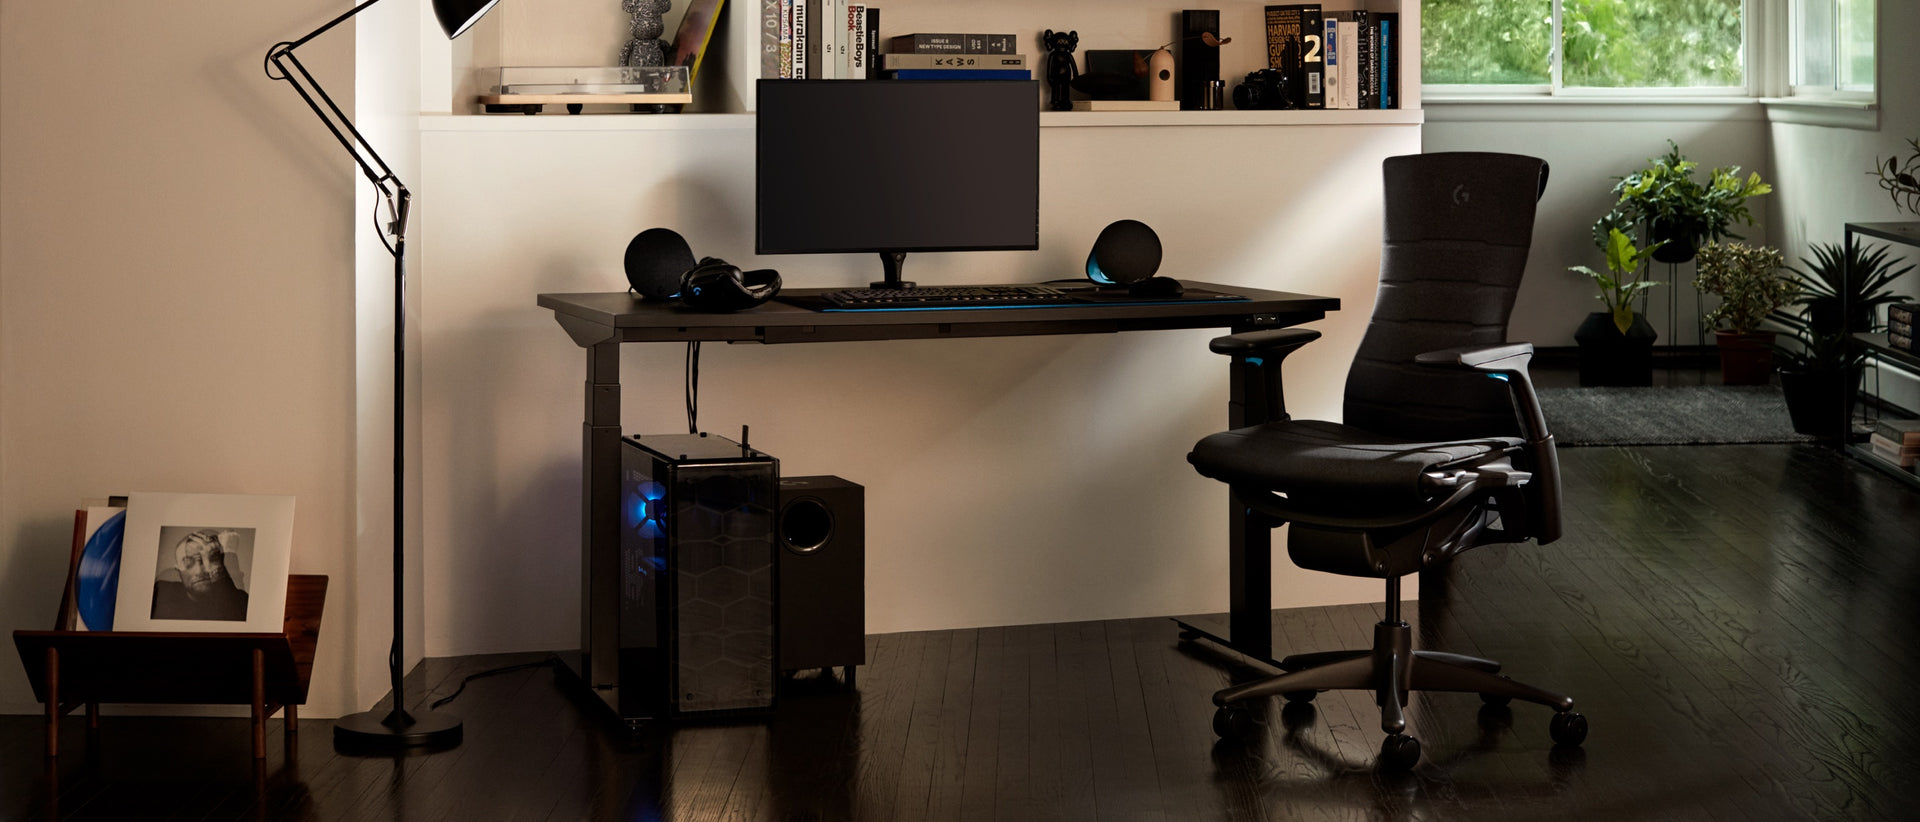 A residential setting features the full set-up, including the Embody Gaming Chair, Ollin Monitor Arm and Motia Gaming Desk, at night